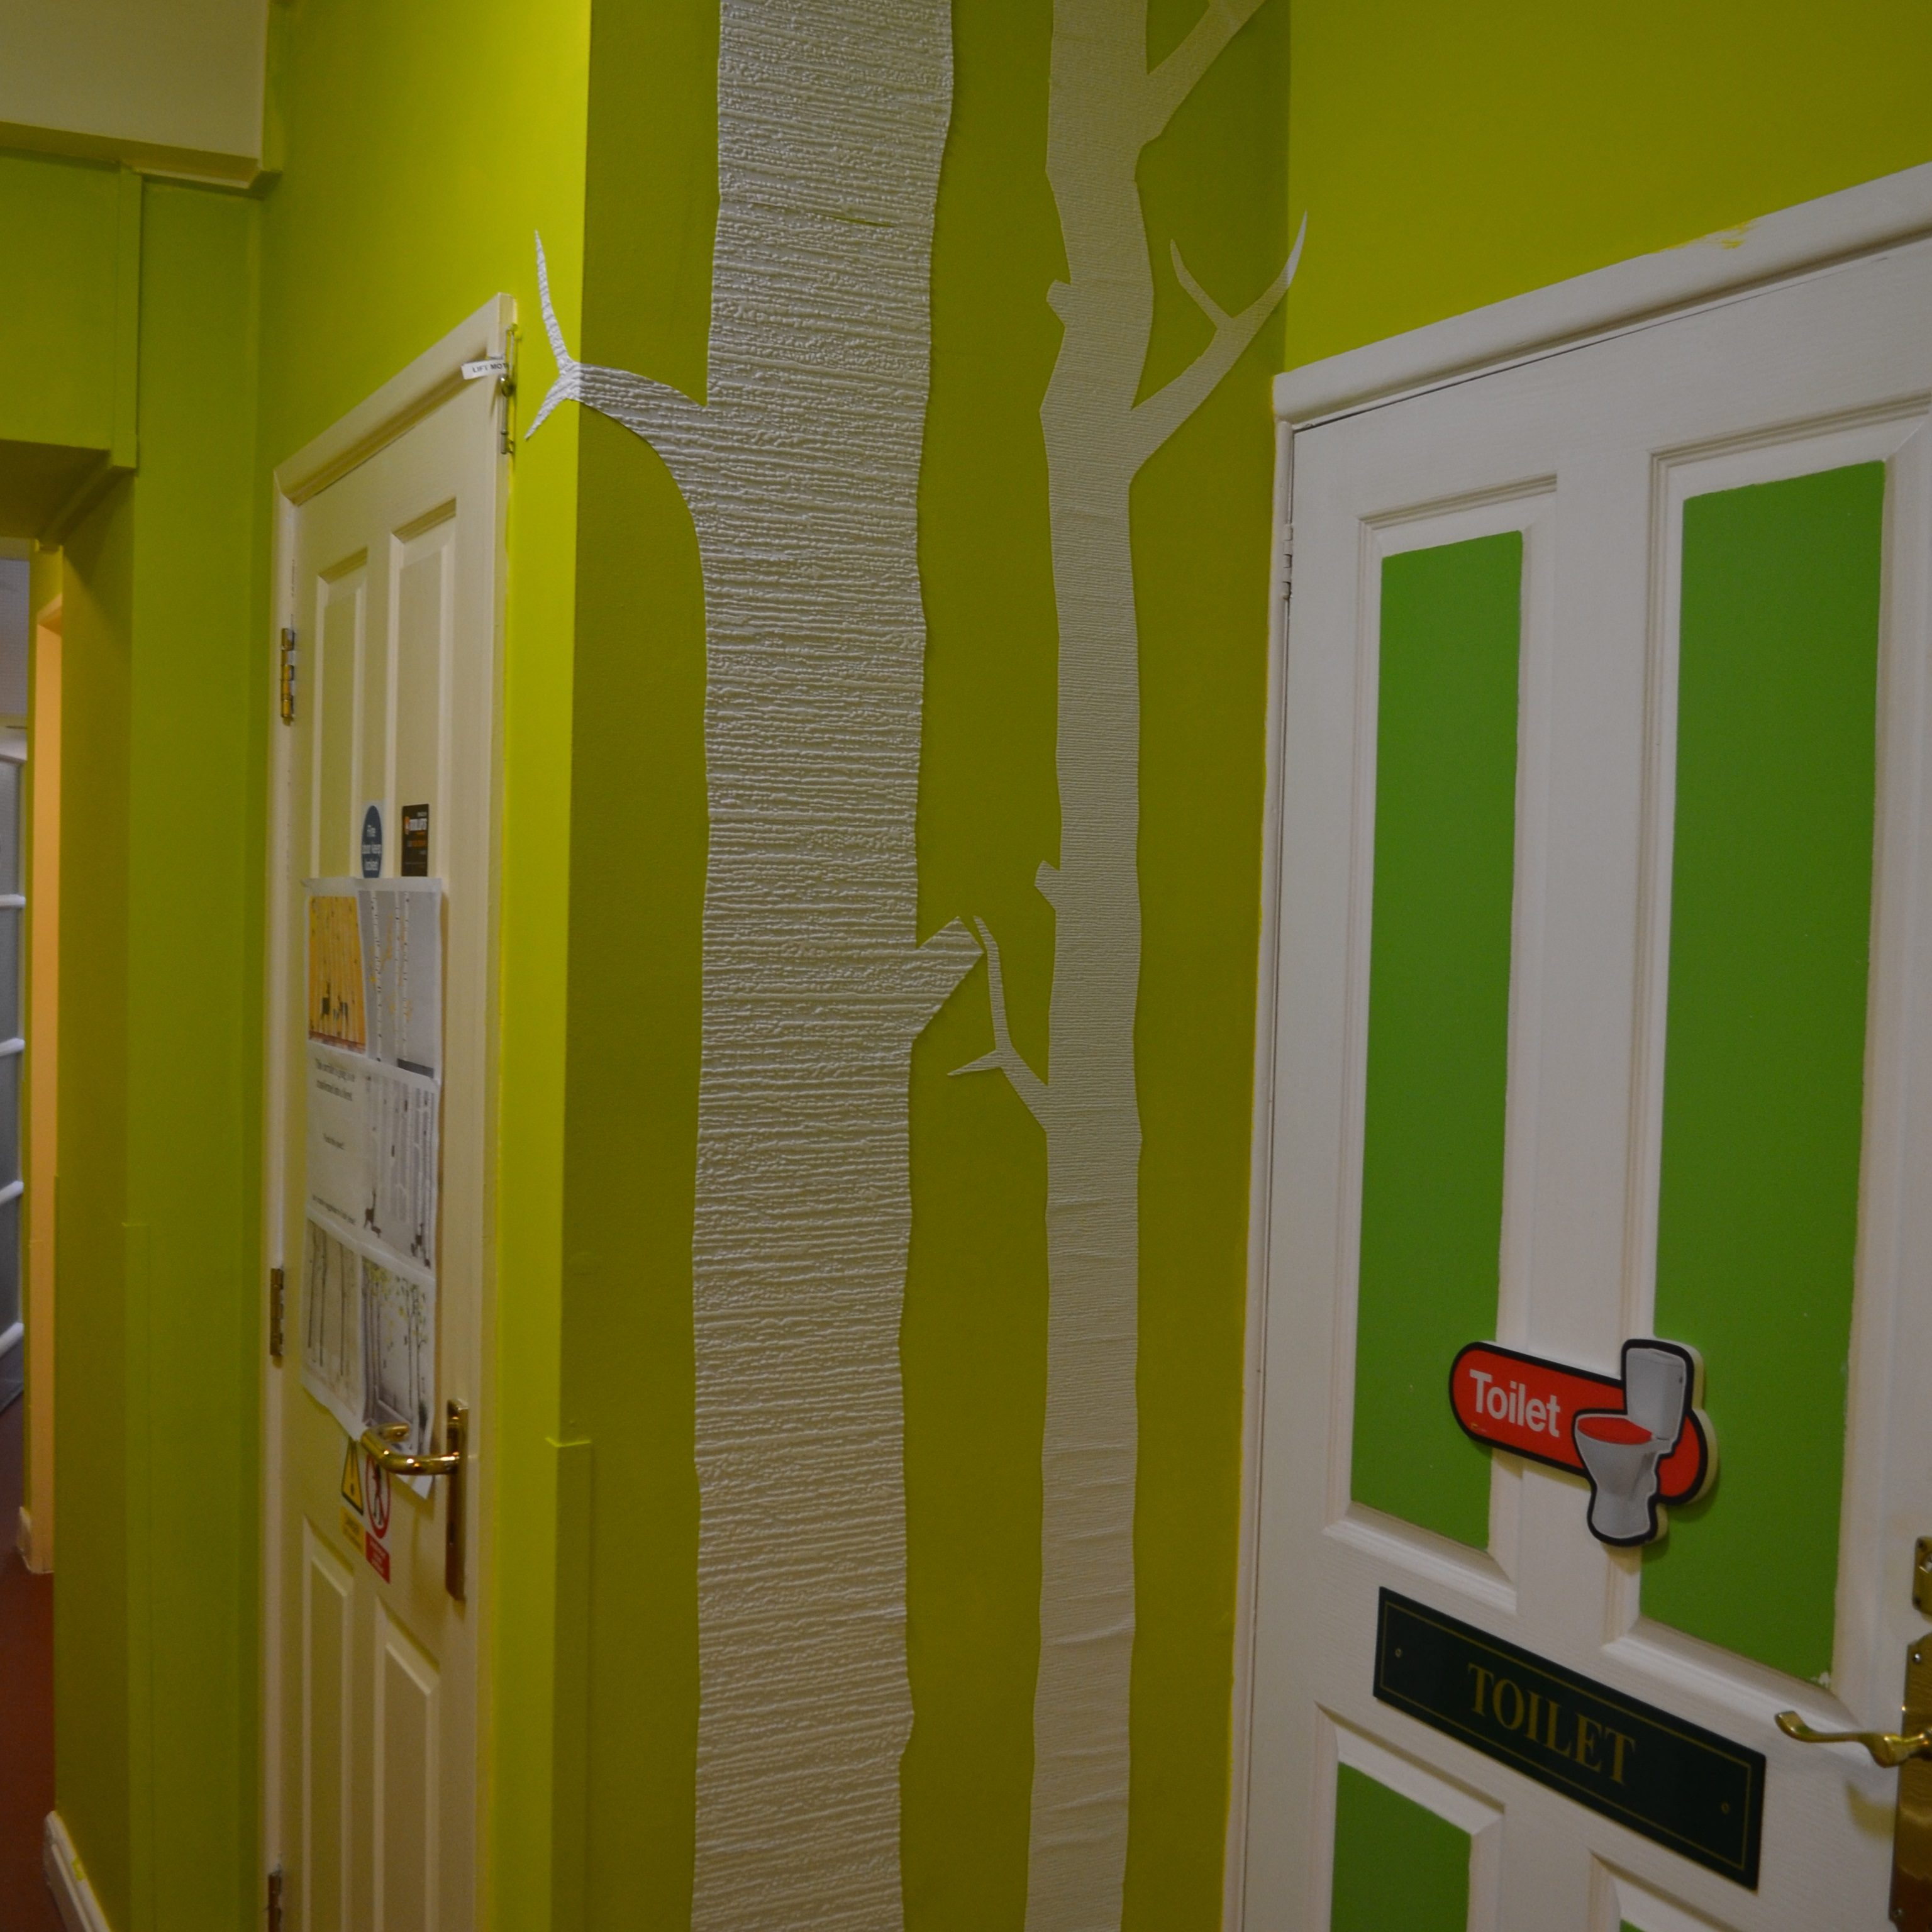 Shows Green painted walls with tree silhouettes.